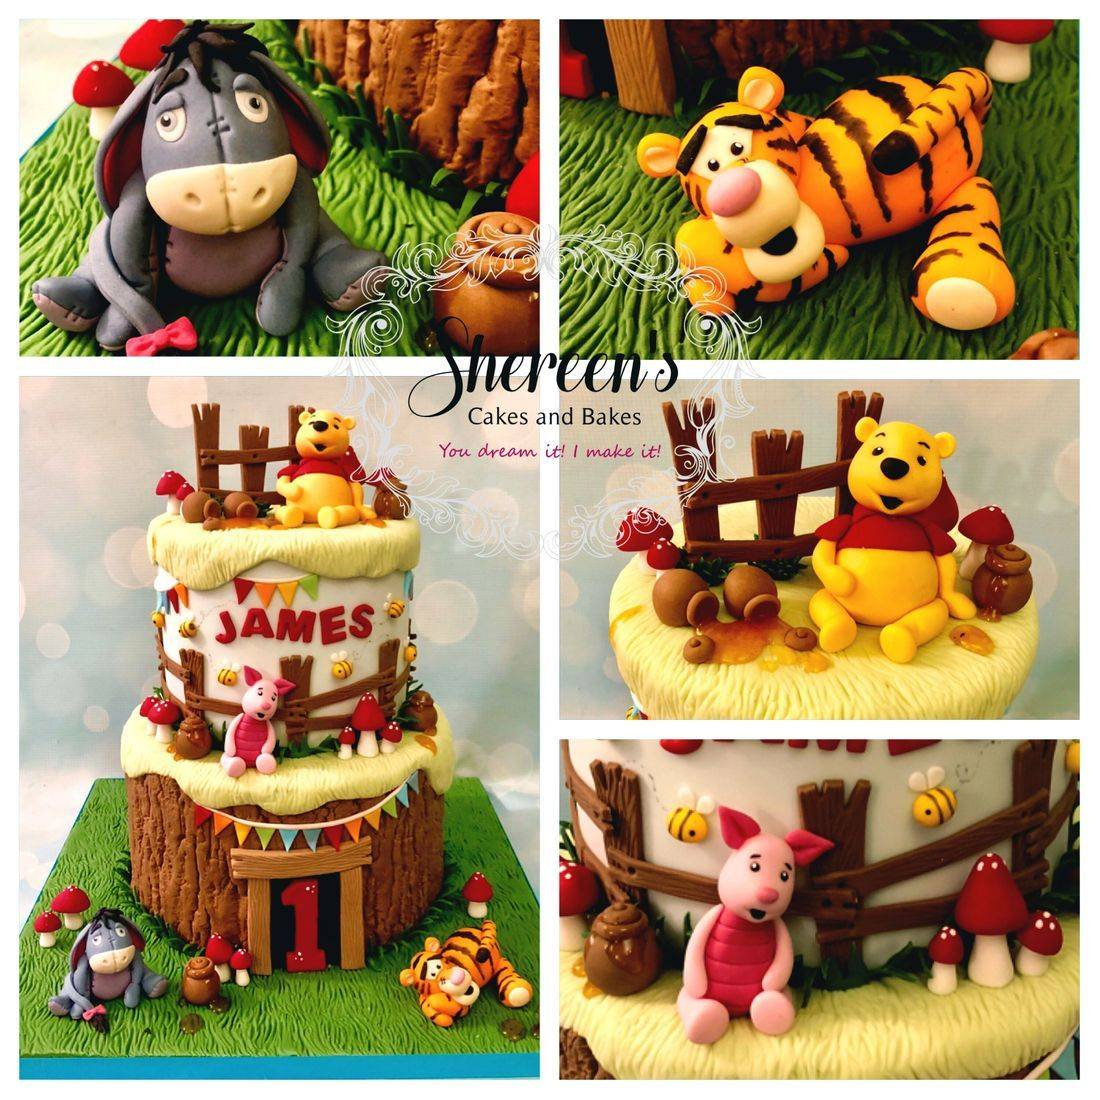 Pooh Bear Friends Cake Birthday Celebration Tigger Eeyore Piglet Bunting Toadstools Honey Pot